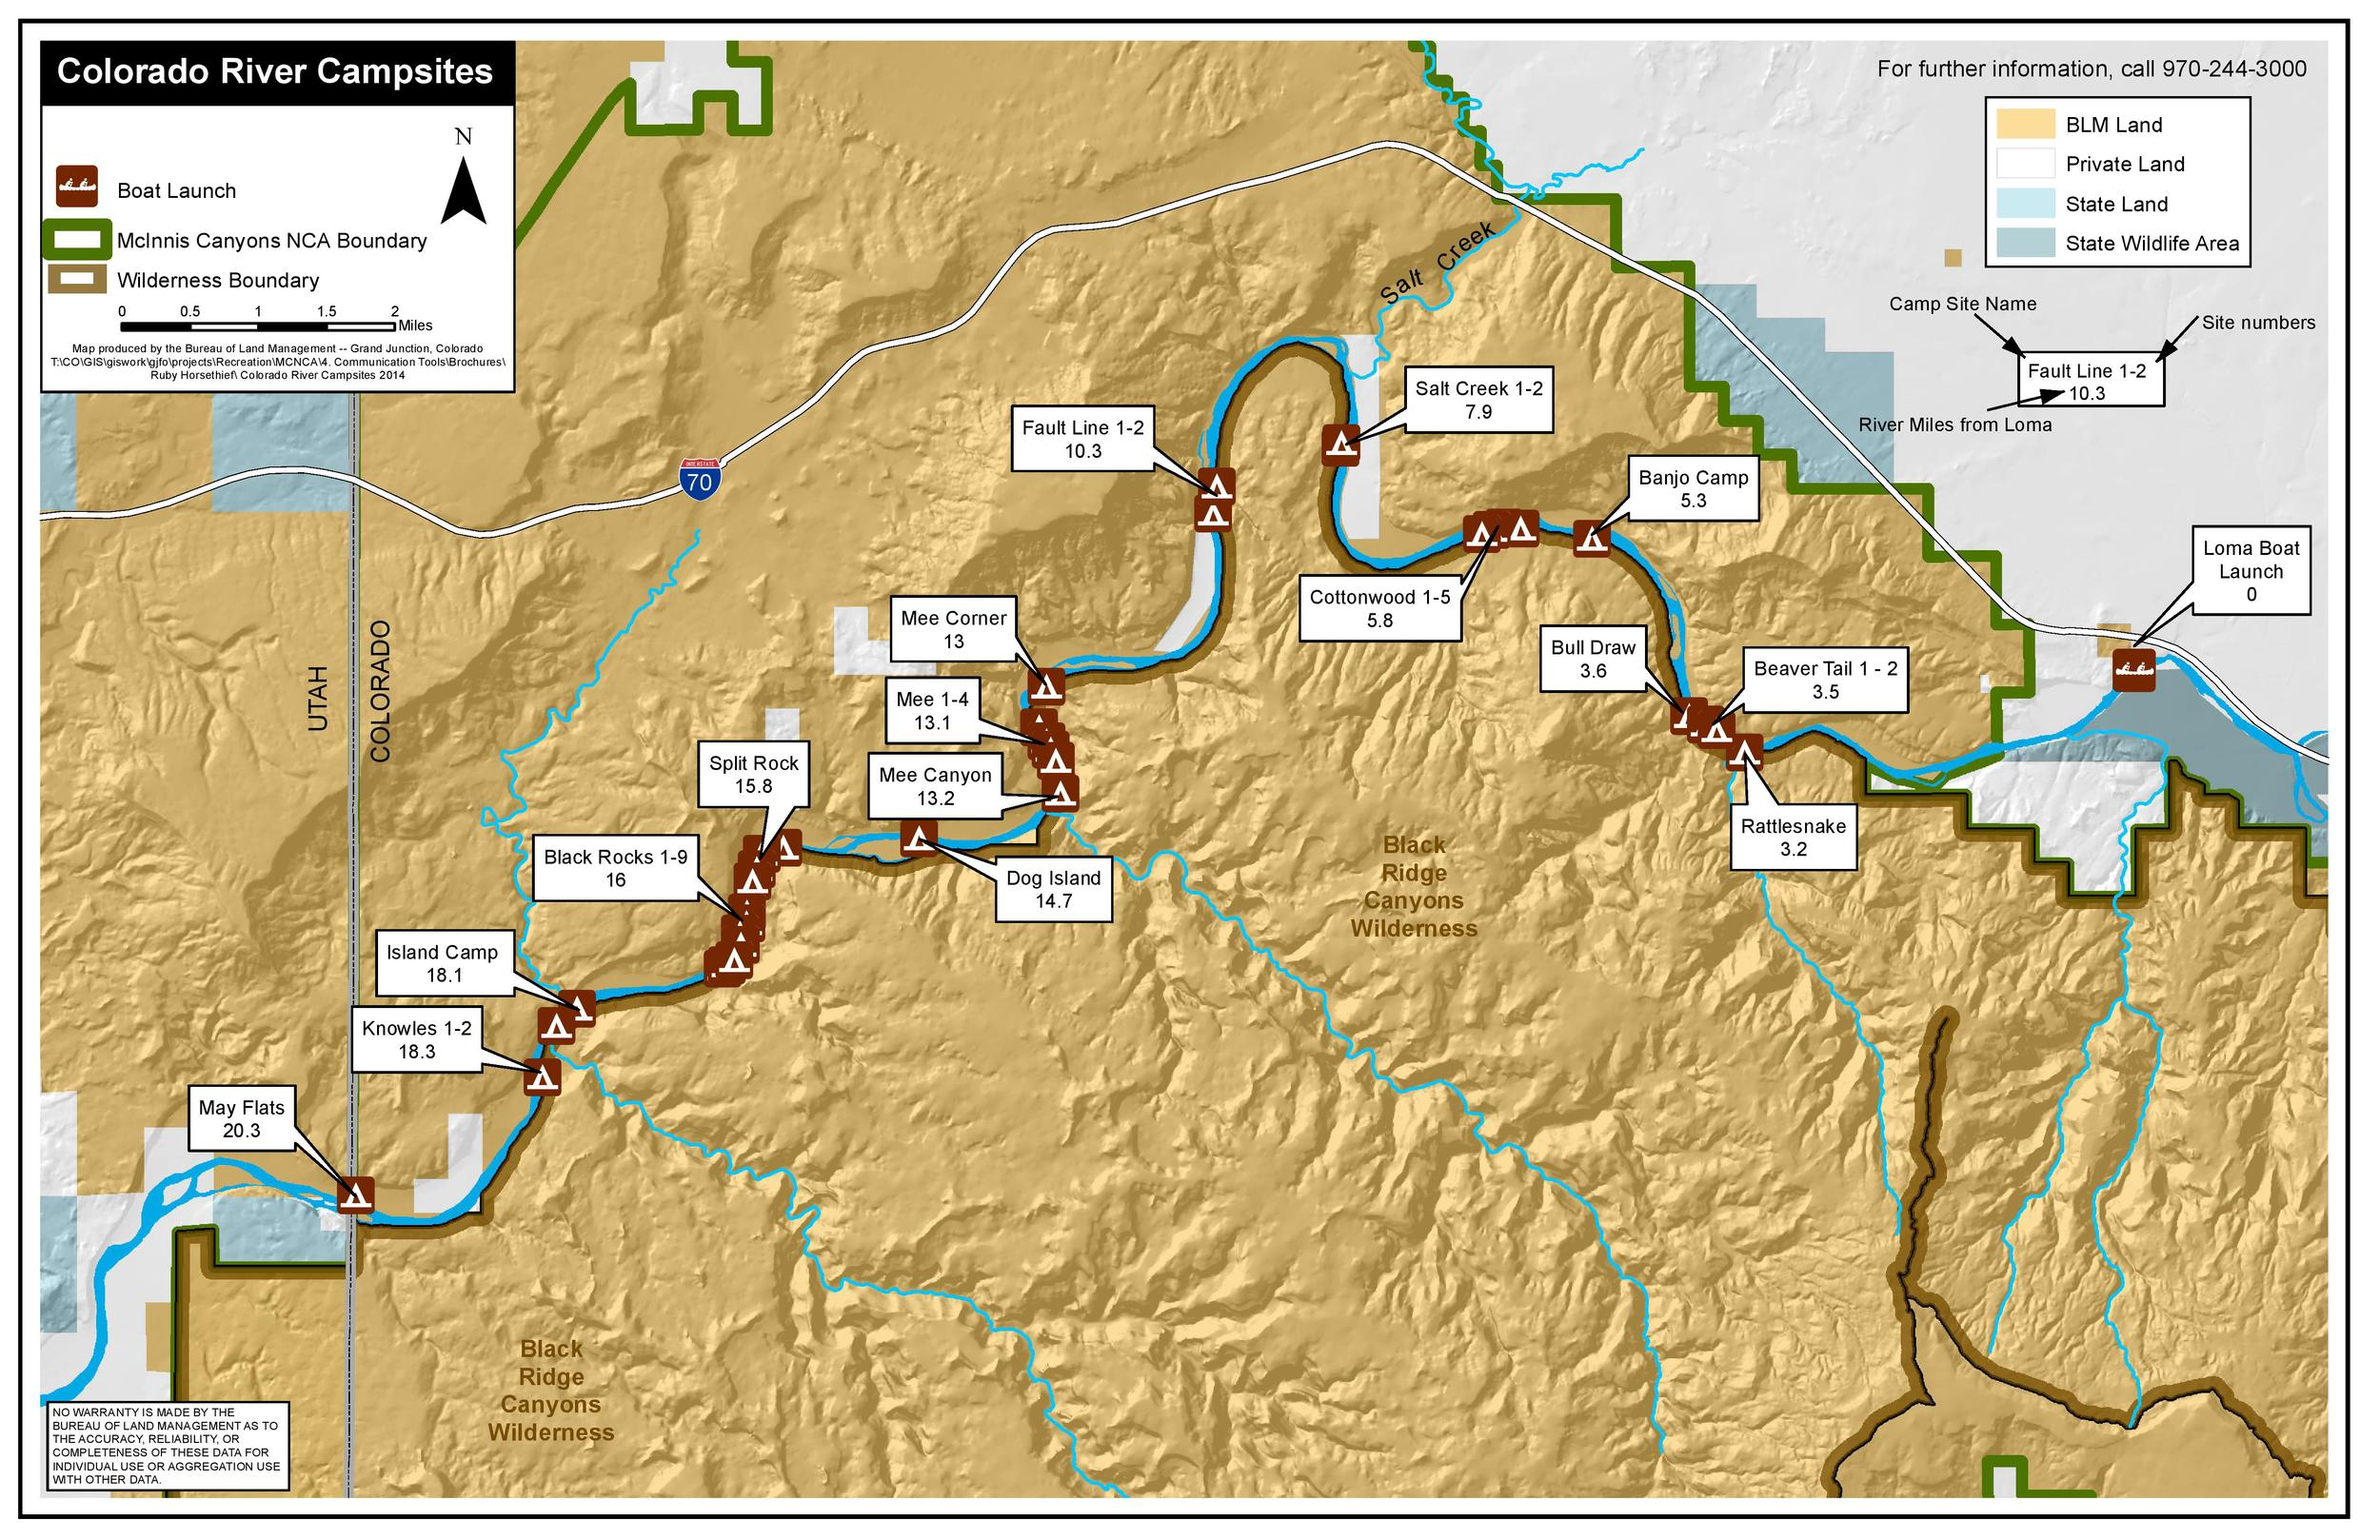 Ruby Horsethief map of the Colorado River - courtesy of Colorado Canyons Association. Numbers are mileage from Loma boat ramp.